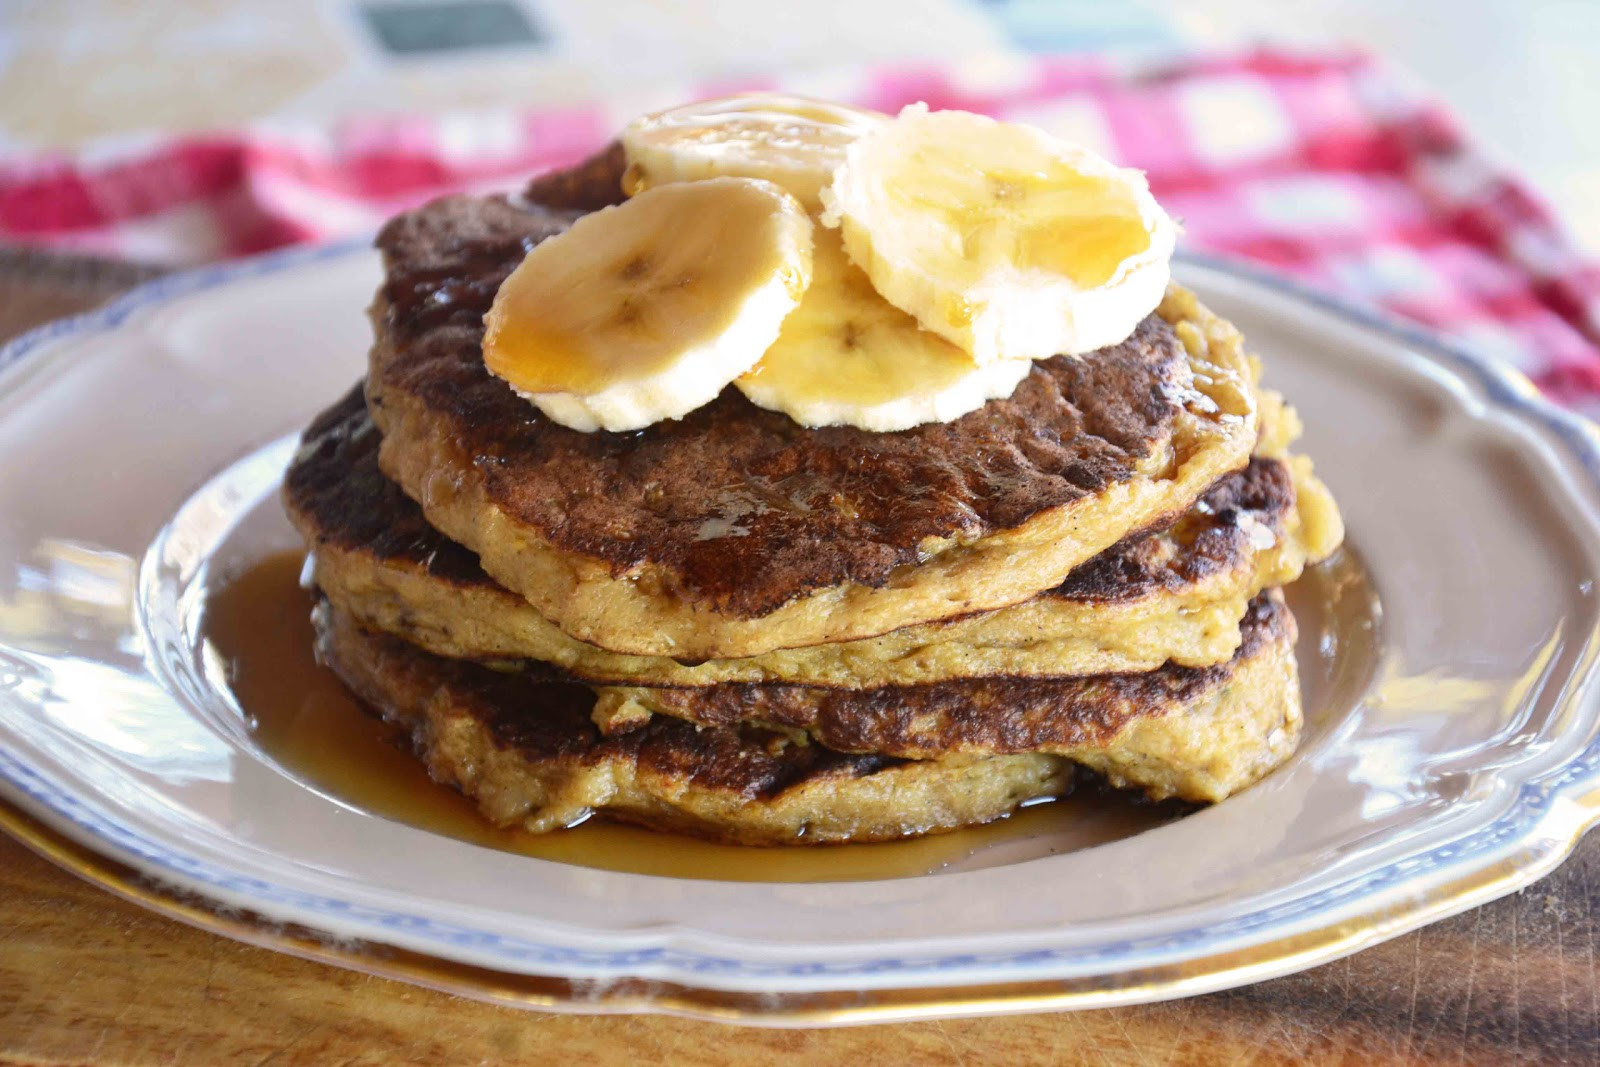 Oatmeal Pancakes Healthy  The eccentric Cook Oatmeal Pancakes Oatmeal Banana Cake